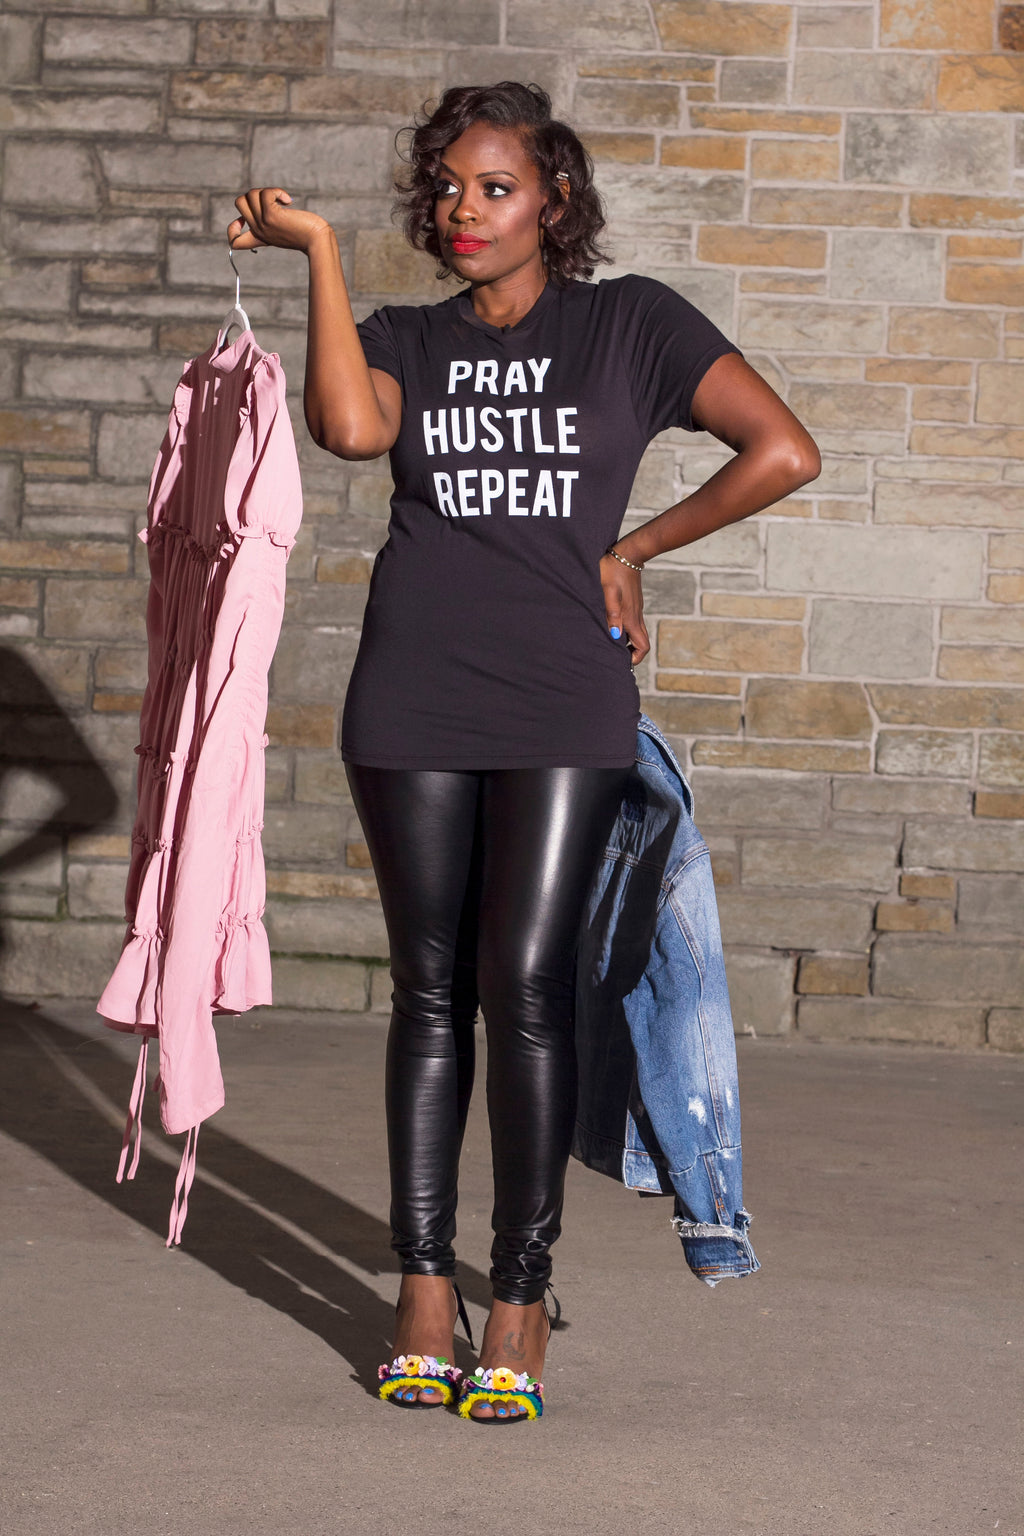 Pray Hustle Repeat Tee